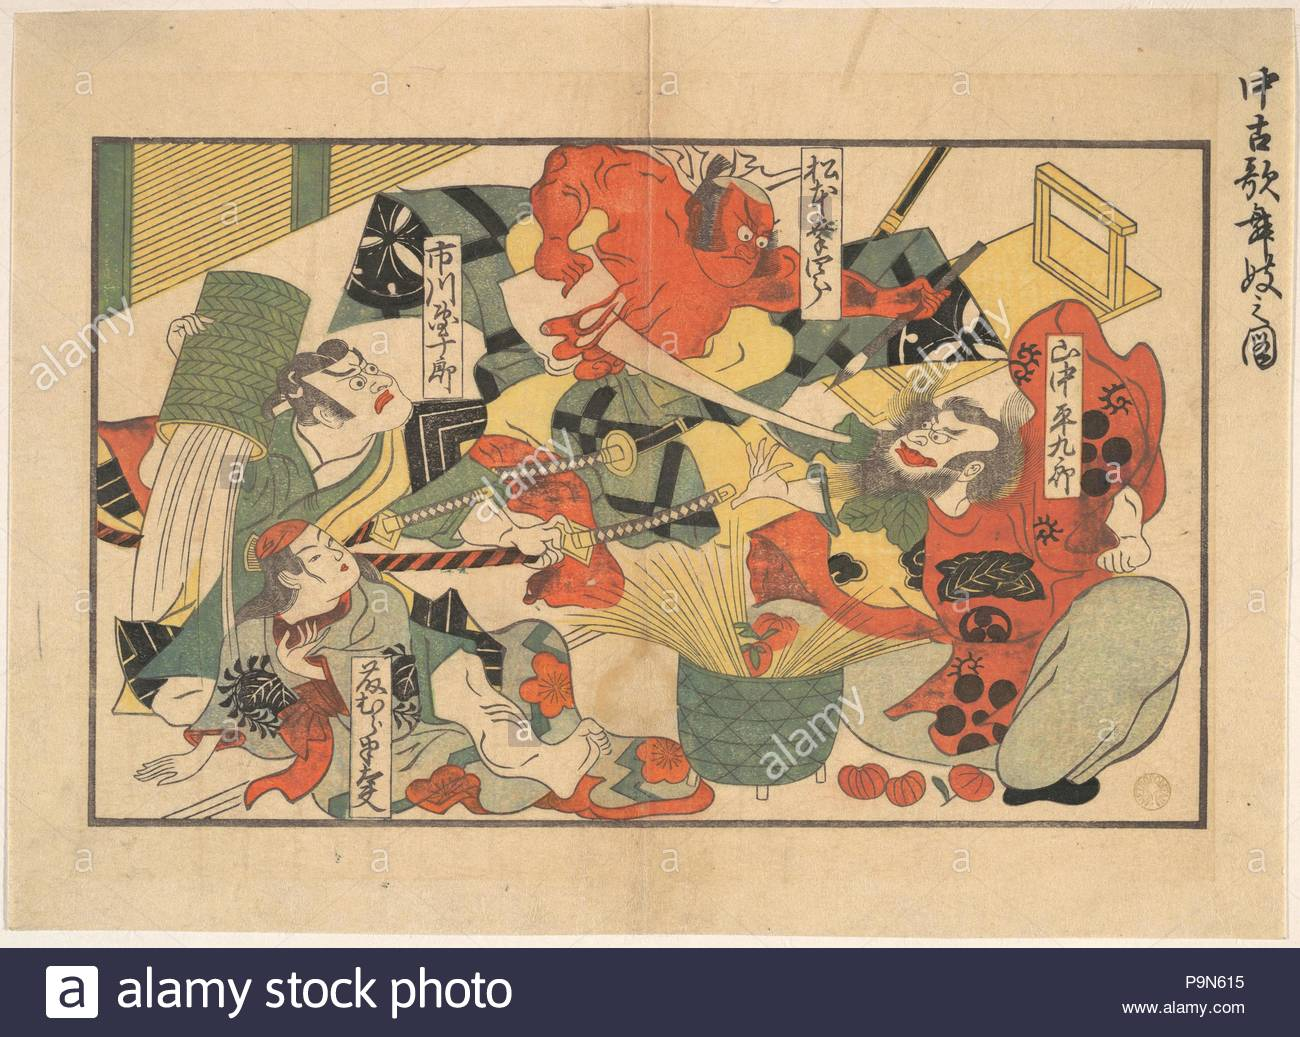 The Advent of a Demon; Scene from a Performance in an old Kabuki Theatre, Edo period (1615–1868), Japan, Polychrome woodblock print; ink and color on paper, H. 8 1/16 in. (20.5 cm); W. 11 1/16 in. (28.1 cm), Prints, Unidentified Artist. - Stock Image